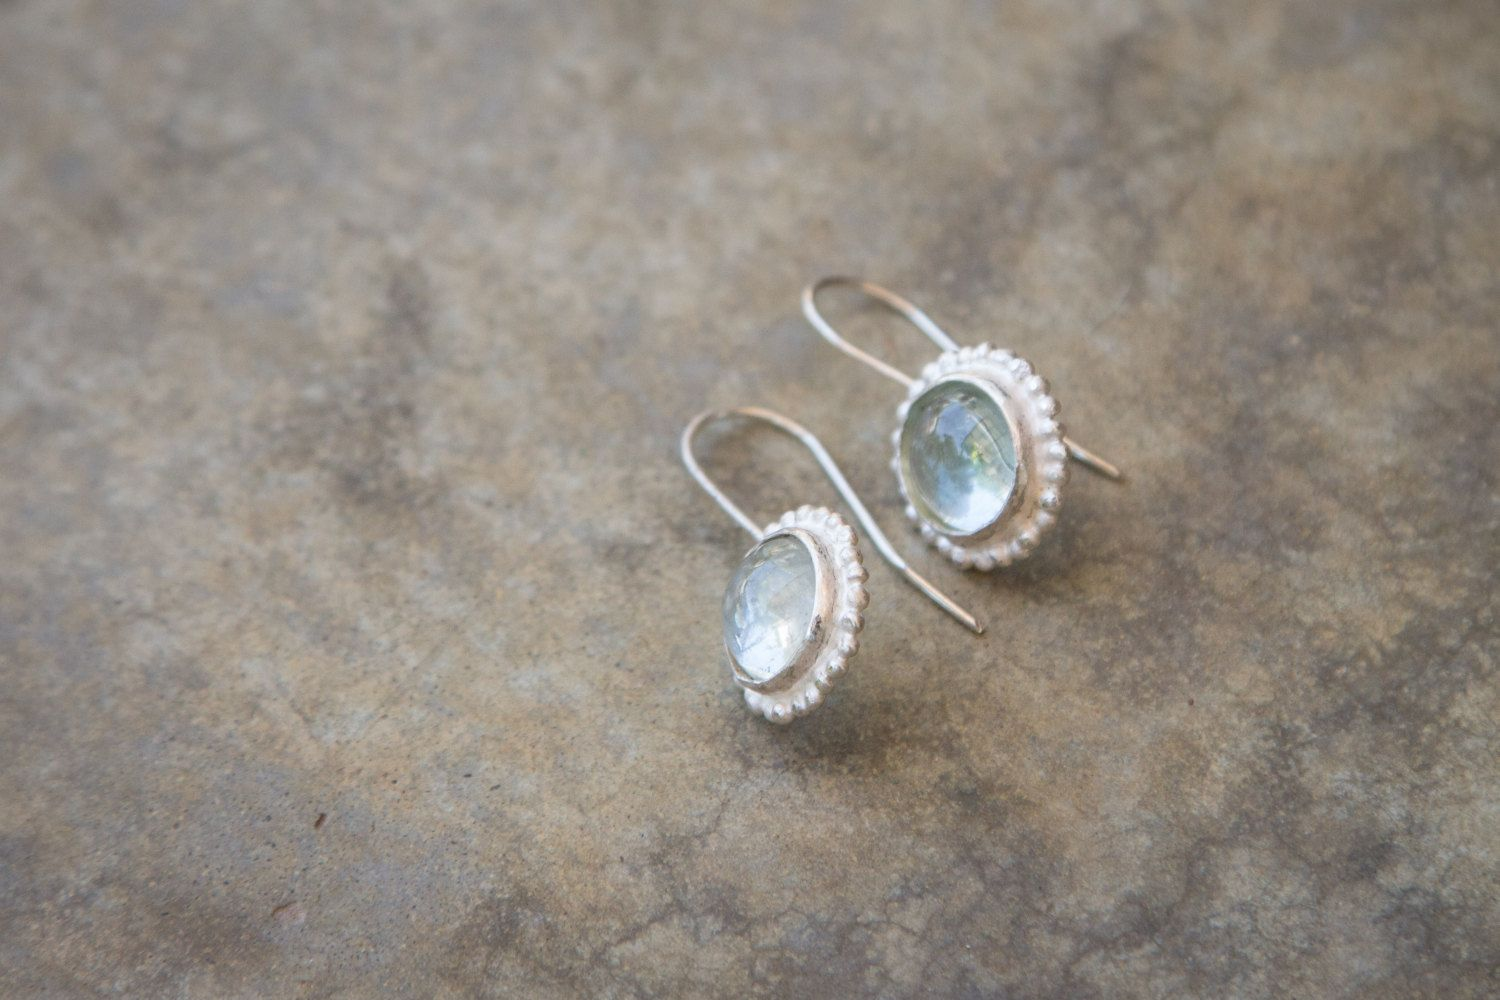 sterling silver aquamarine delicate earrings. March birth stone. Simple organic design. cocktail earrings. antique style. holiday gift. by TamyZurTachshit on Etsy